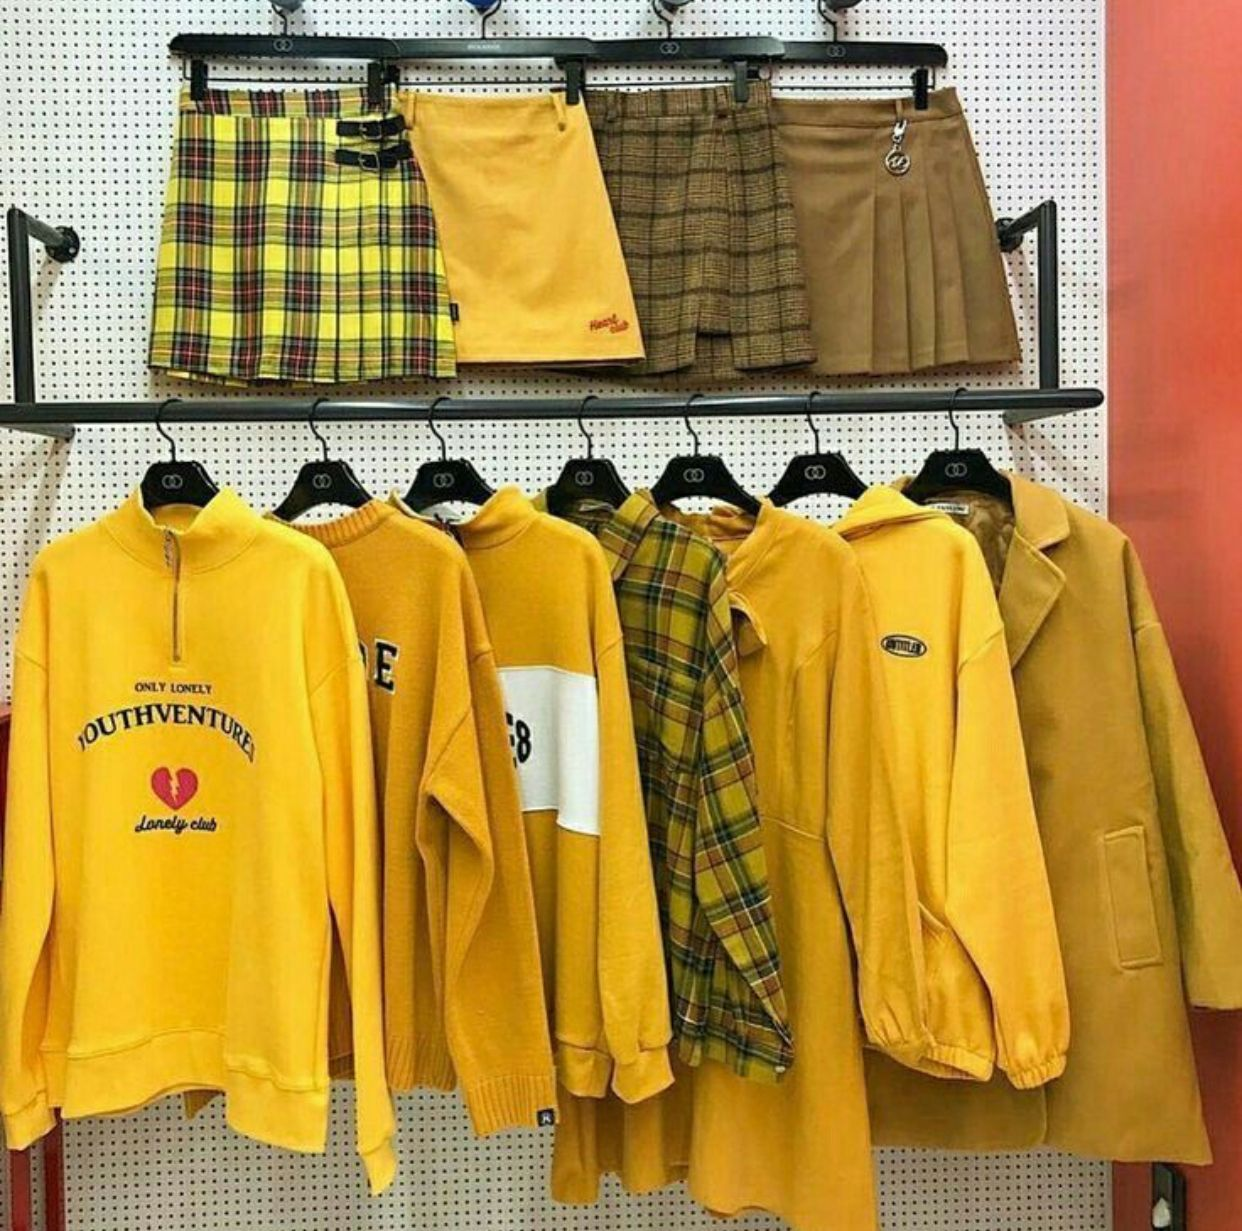 Mustard Yellow Aesthetic Pictures